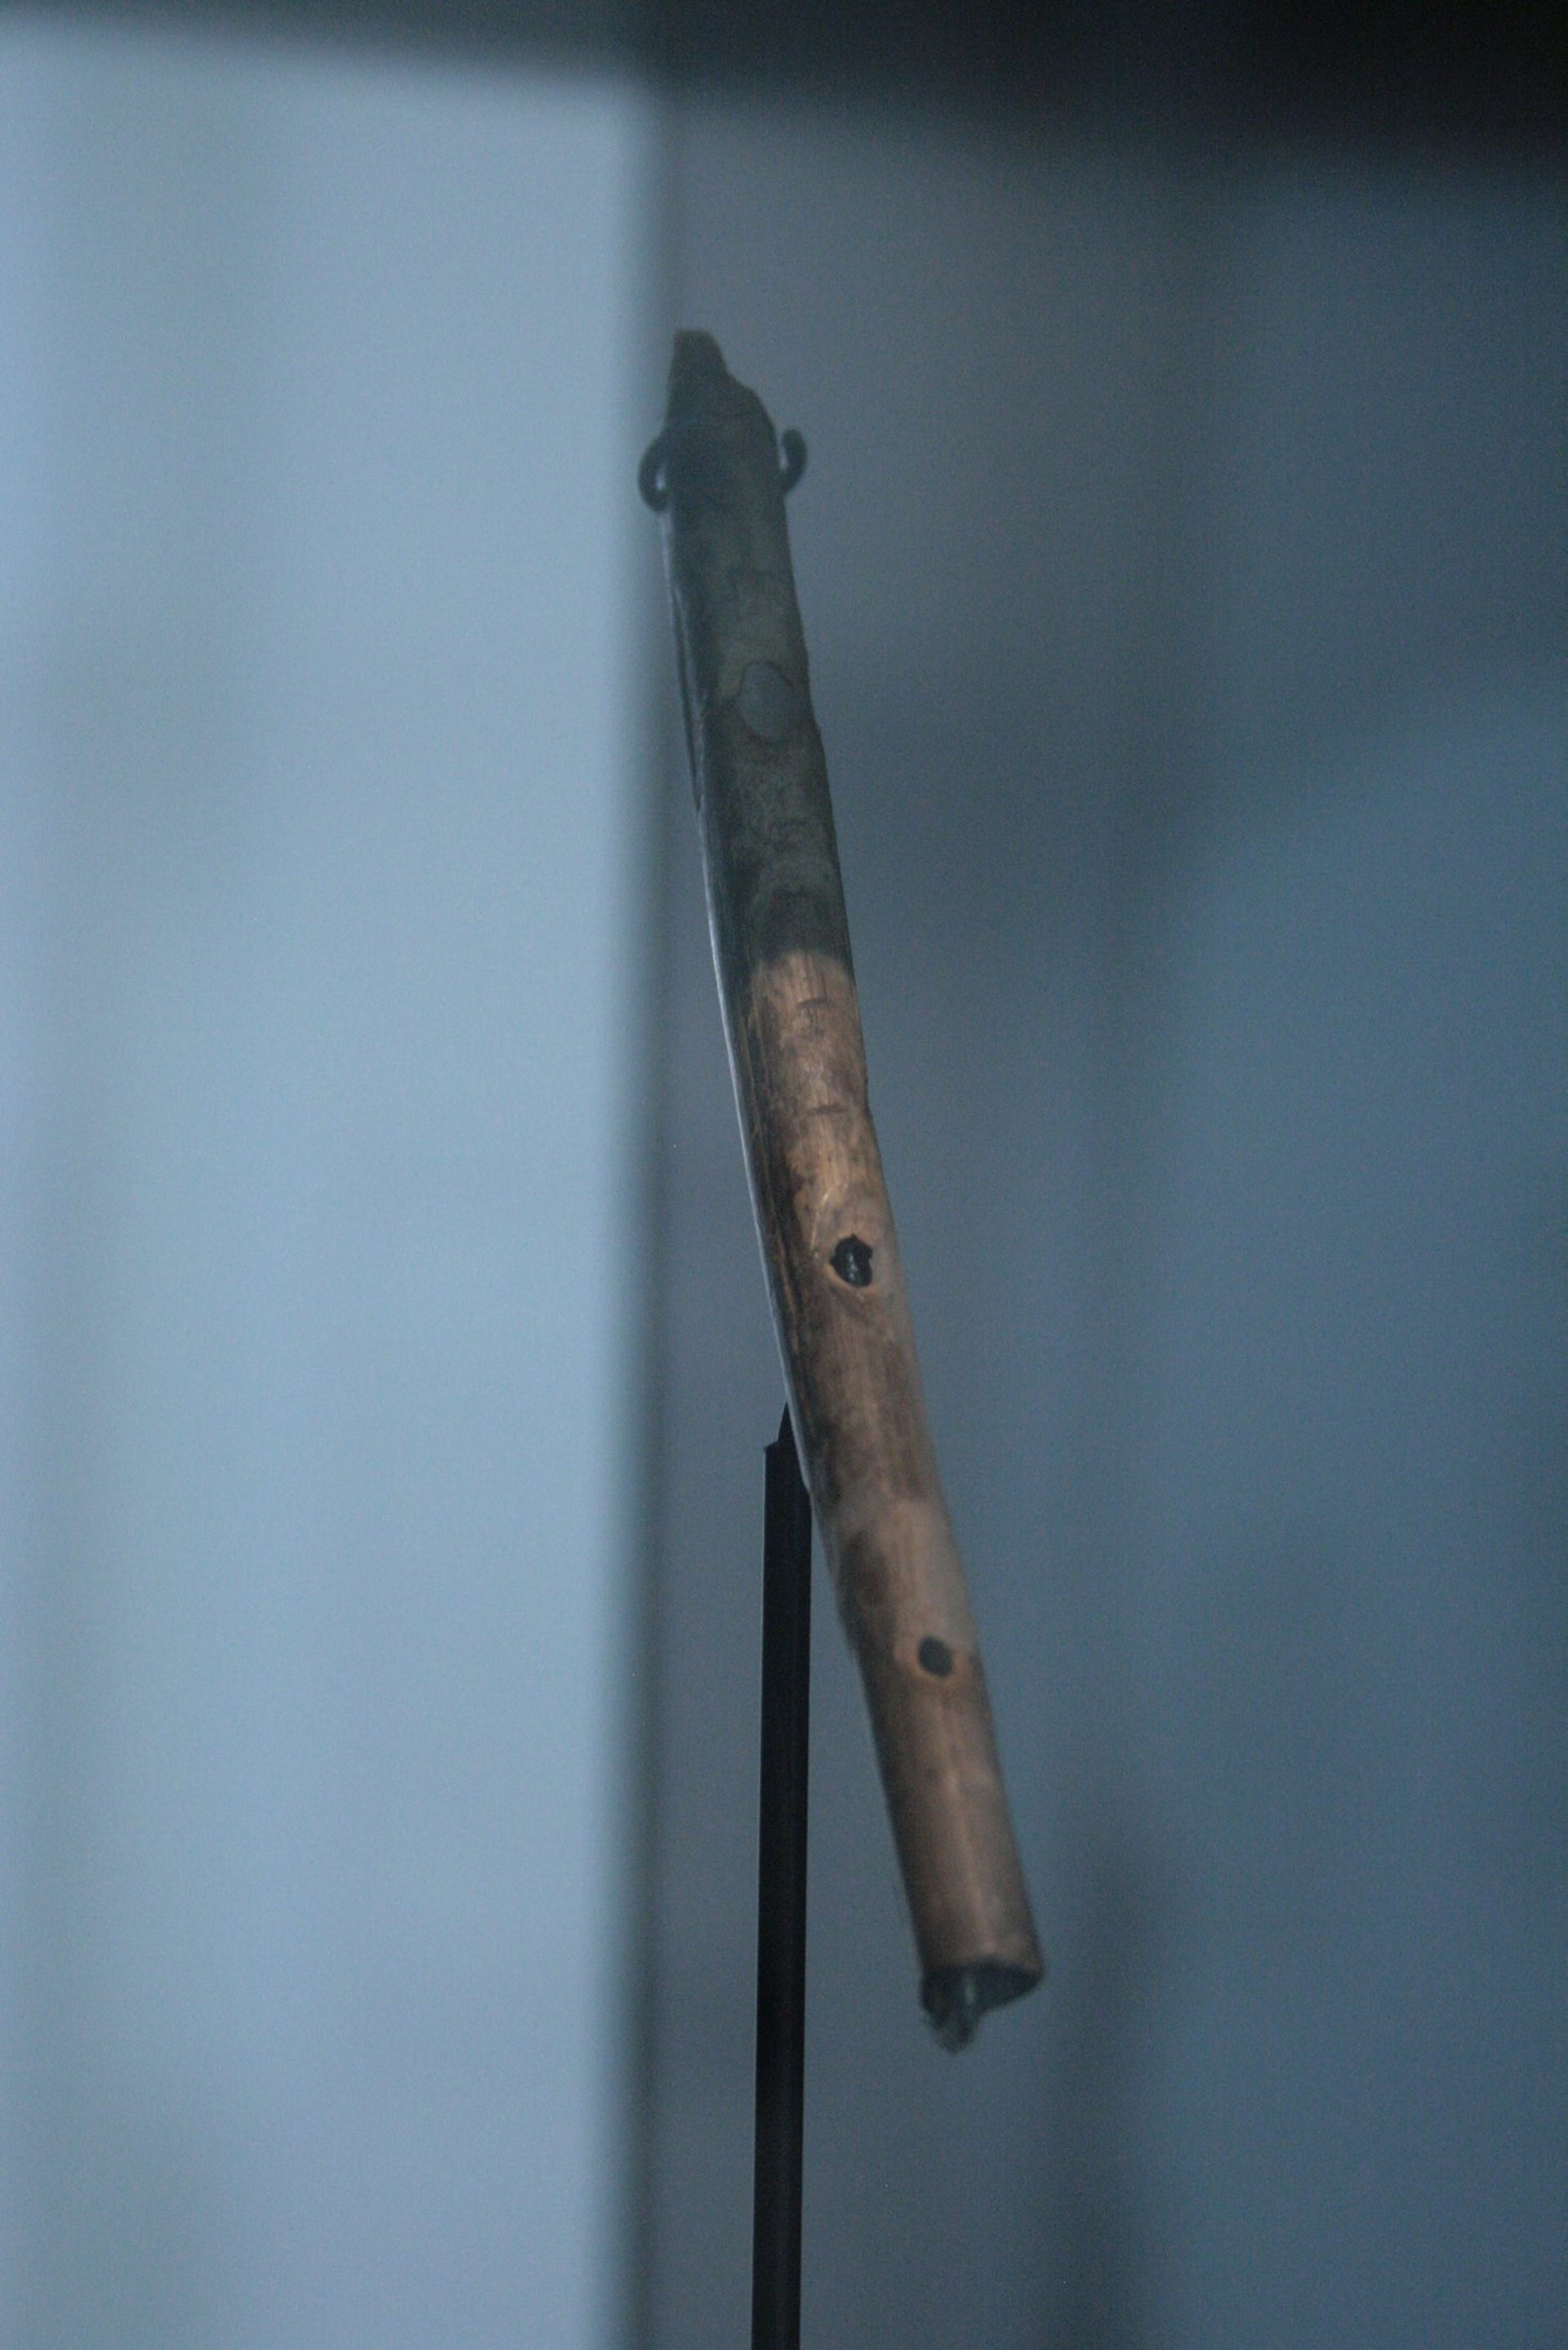 Earliest known flute, around 35,000 to 40,000 years old, Geisenklösterle cave. It is made from a vulture's wing bone perforated with five finger holes